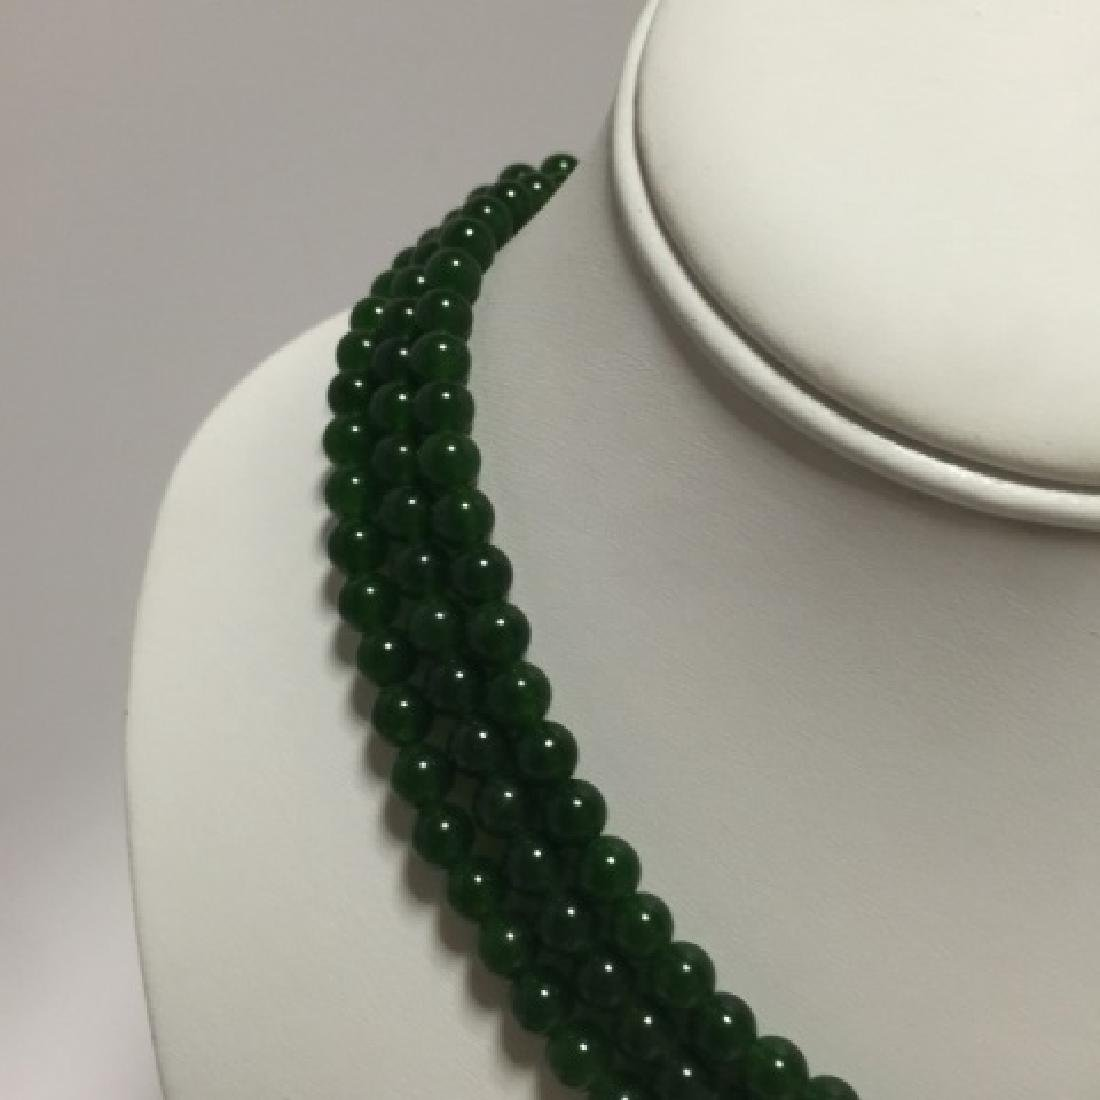 Three Chinese Green Jade Round Bead Necklaces - 3